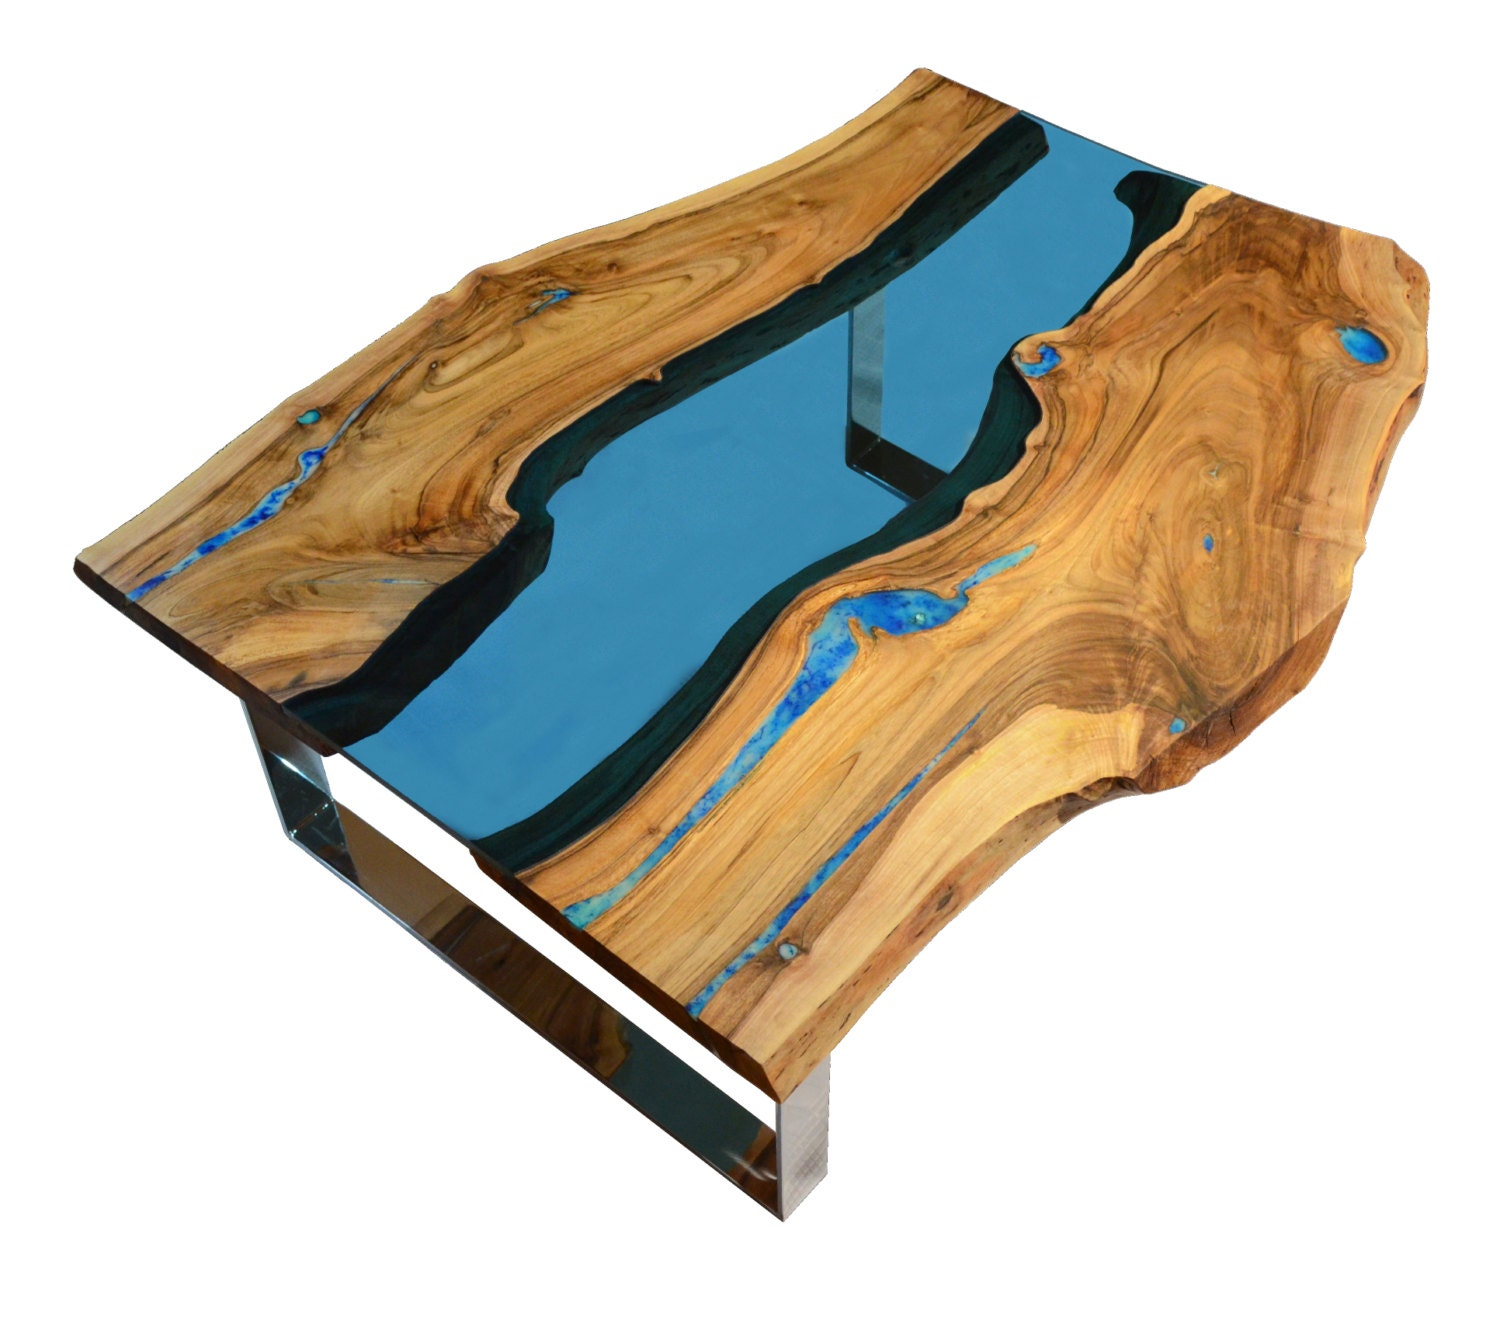 Live Edge River Coffee Table With Glowing Resin Fillin And